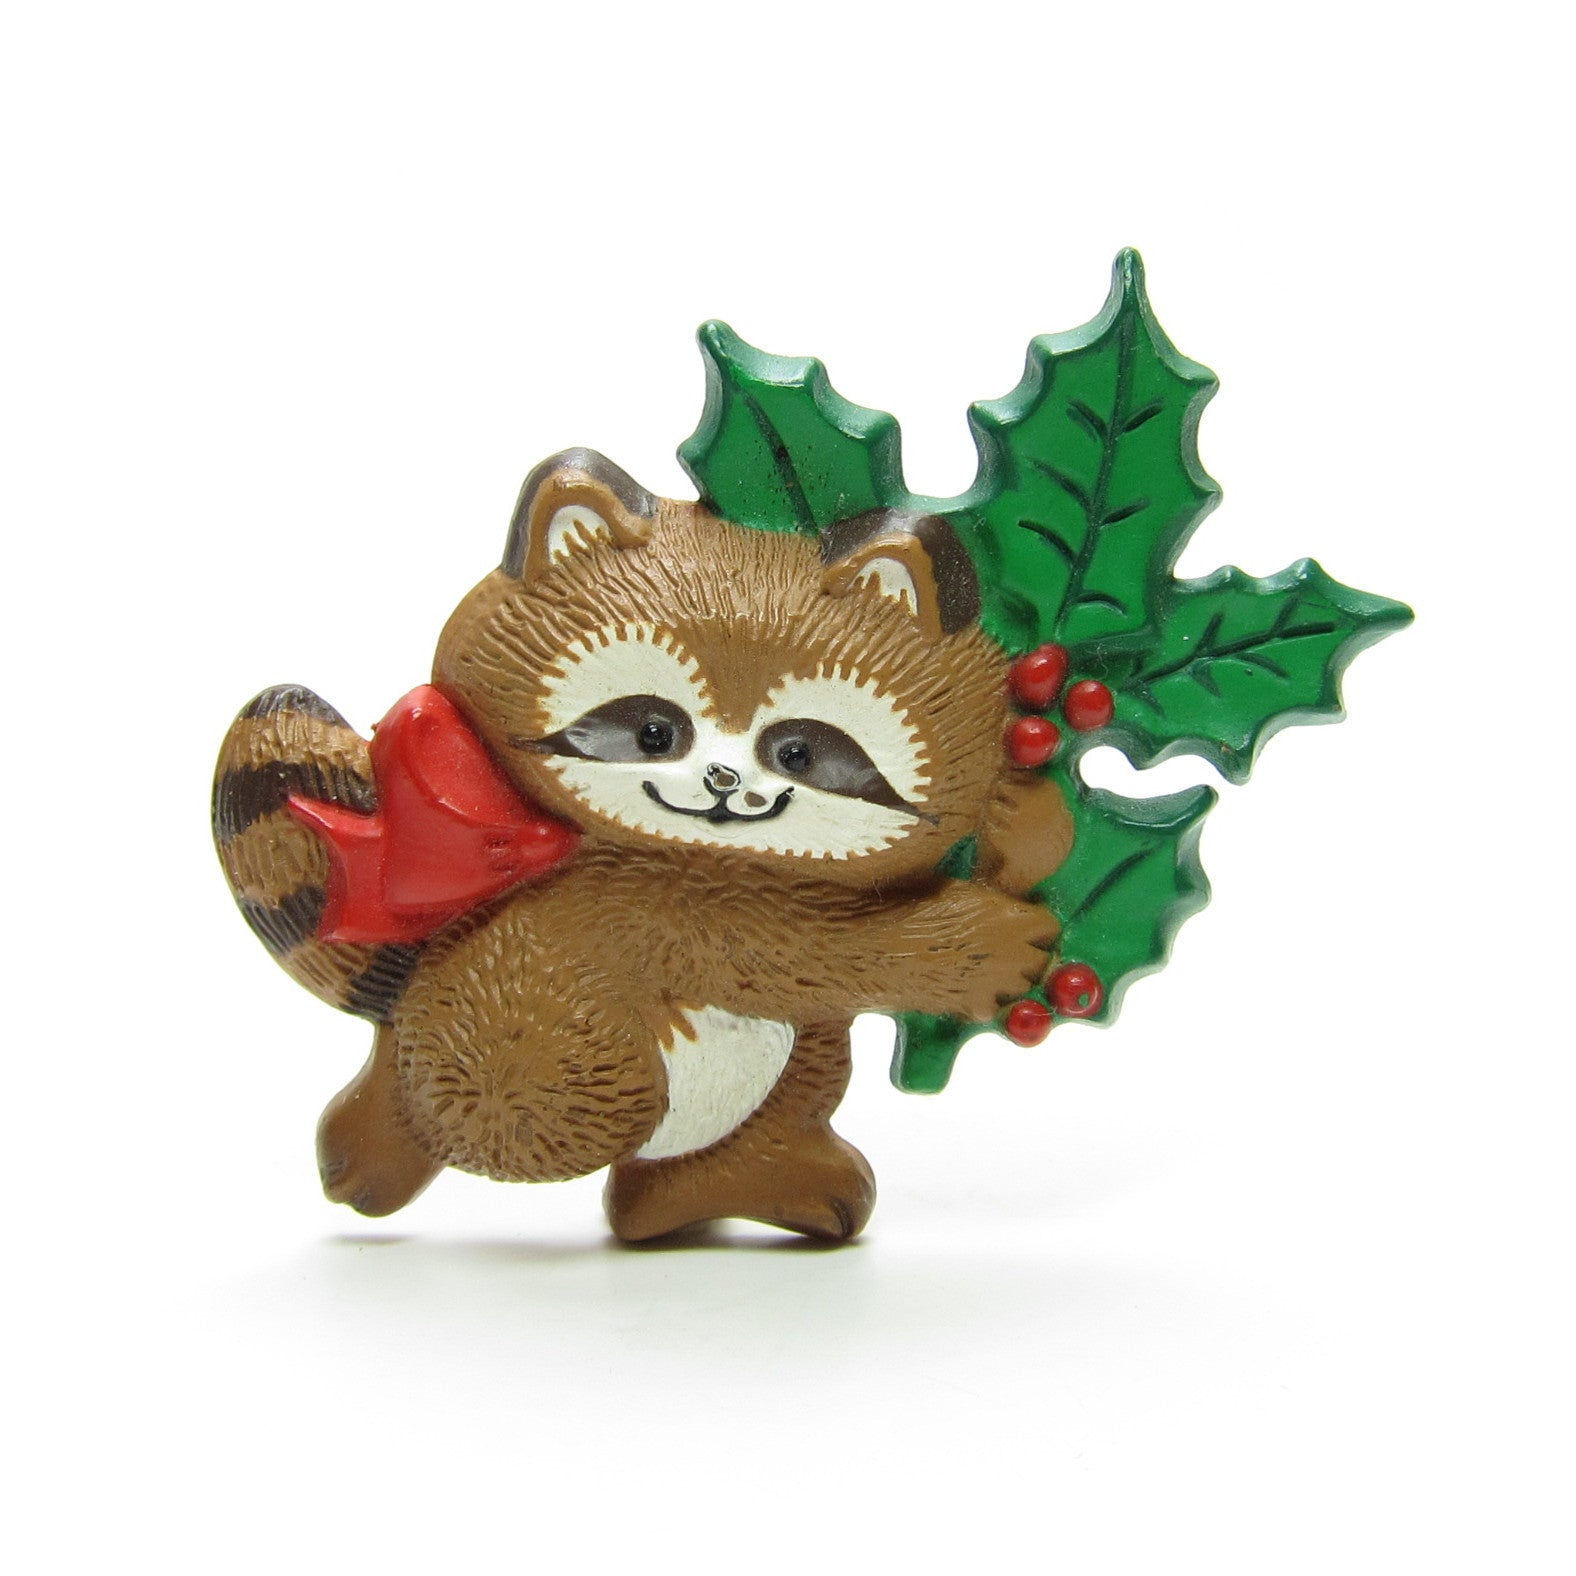 Hallmark Raccoon pin vintage 1986 Christmas lapel